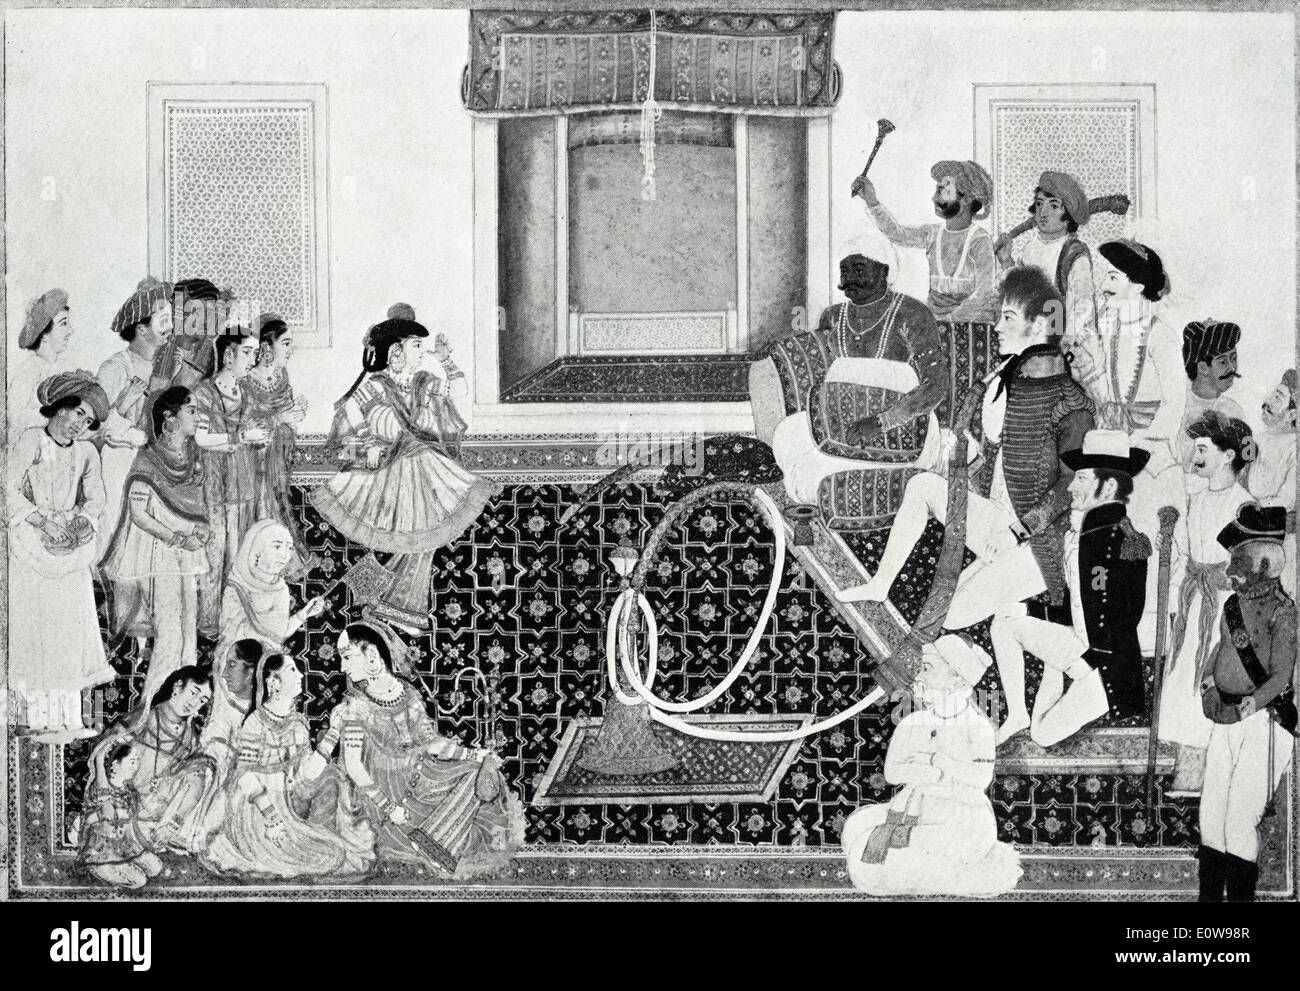 18th century British gentlemen smoking a hookah in an Indian painting from that period. - Stock Image